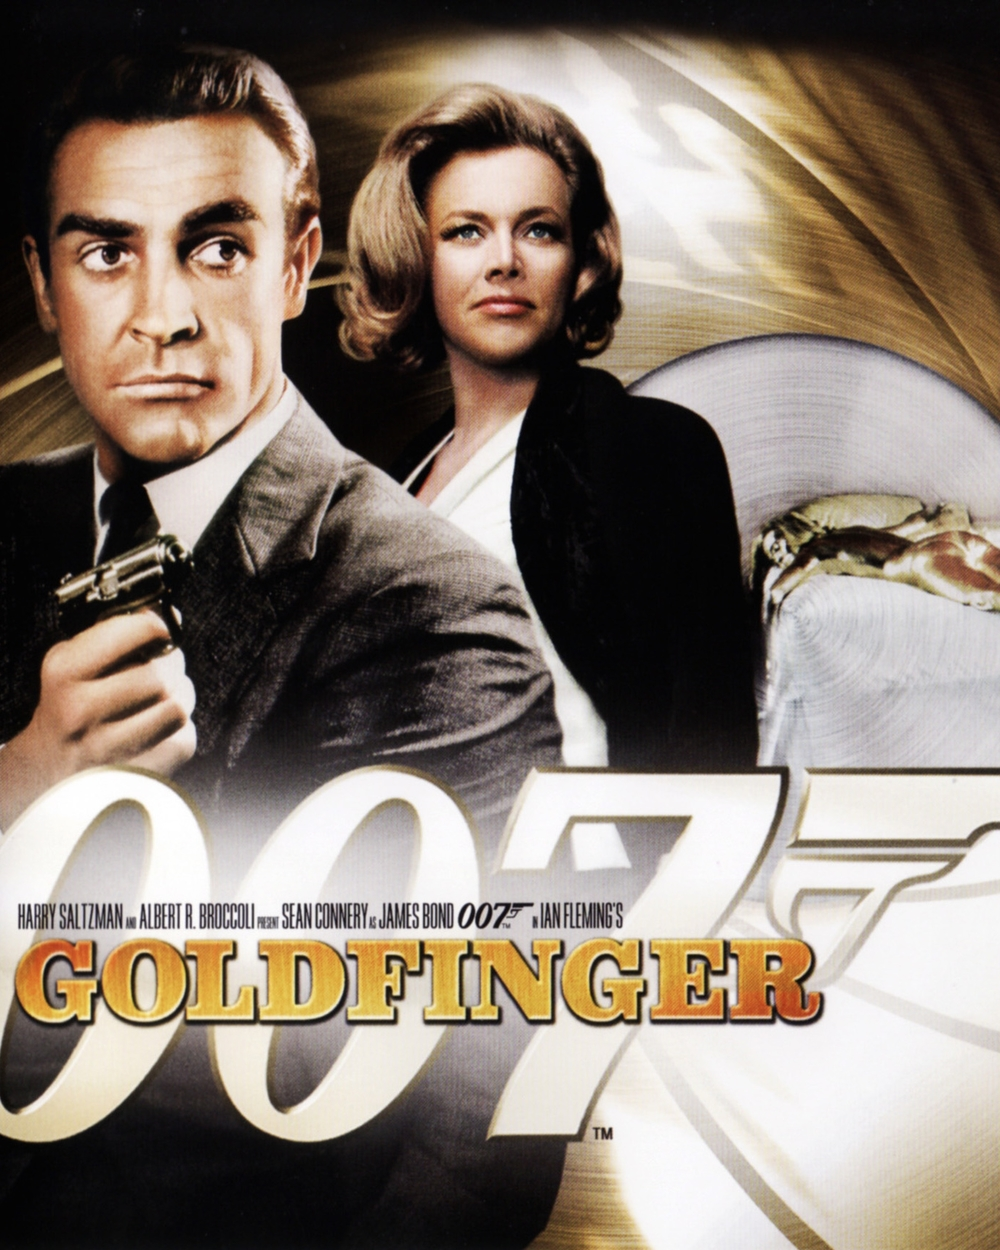 James_Bond_007_Goldfinger_(bluray).jpg